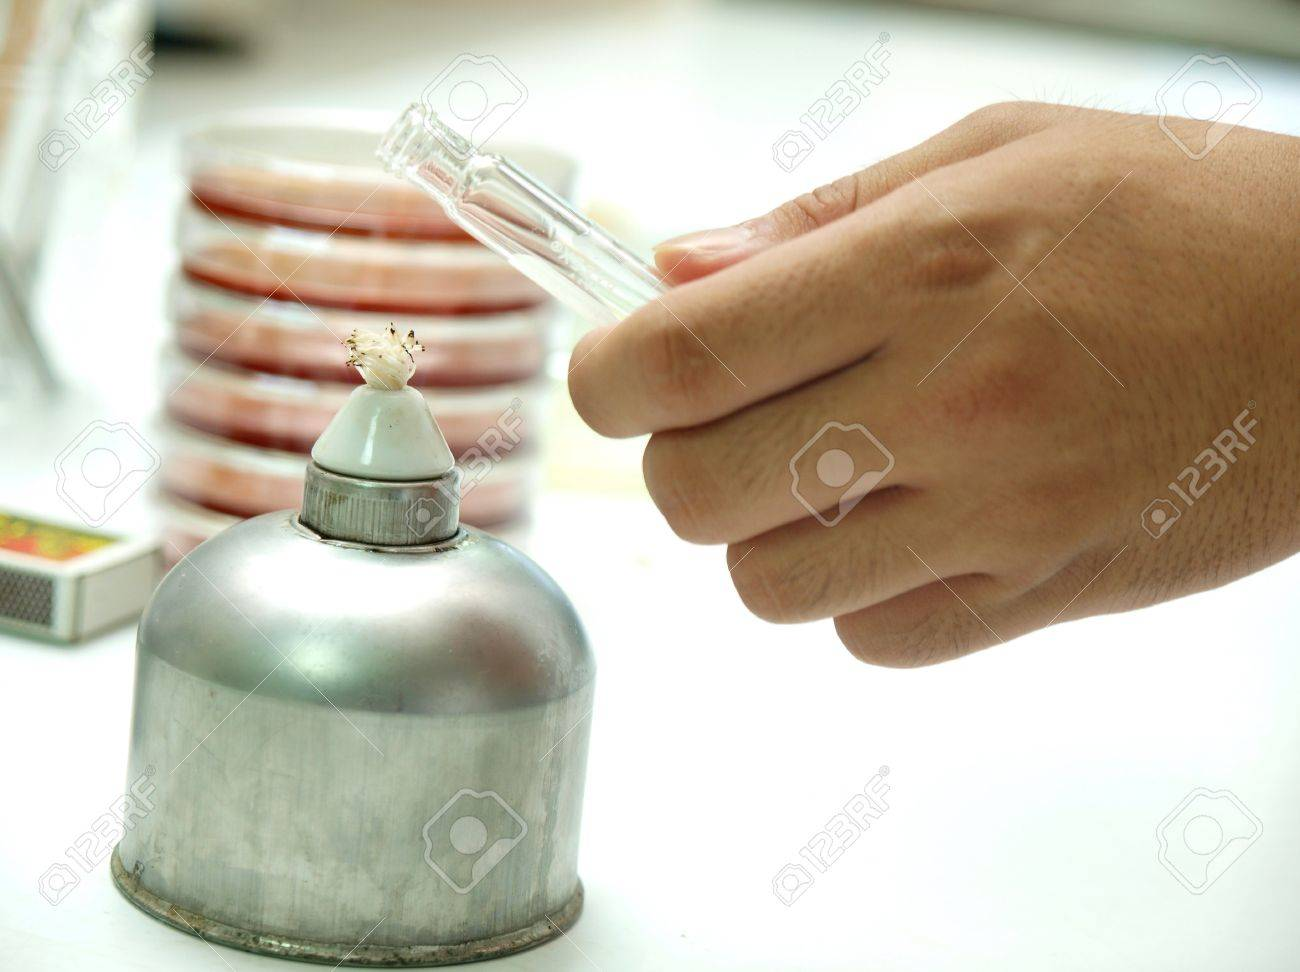 alcohol lamp for sterile technique in microbiology lab Stock Photo - 19164731